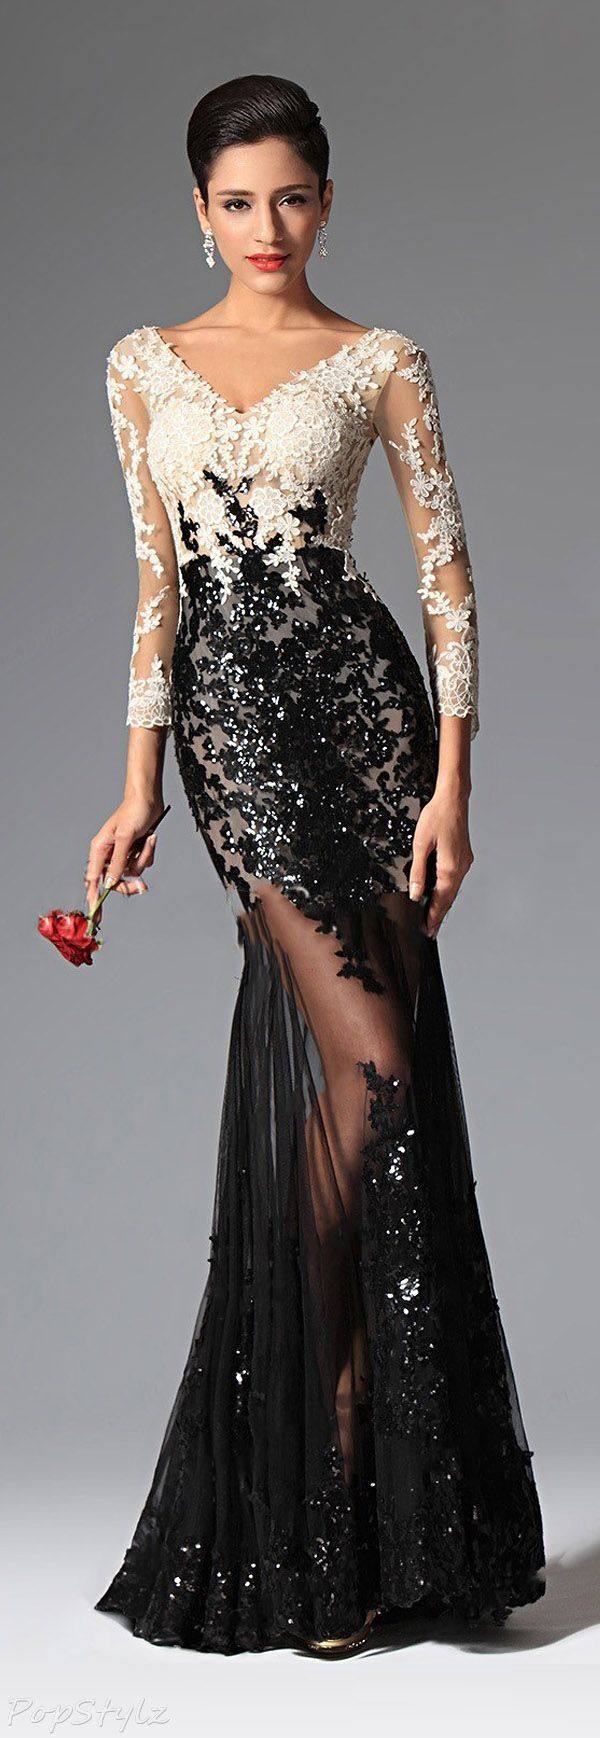 Sequin Tulle & Lace Sleeves Gown